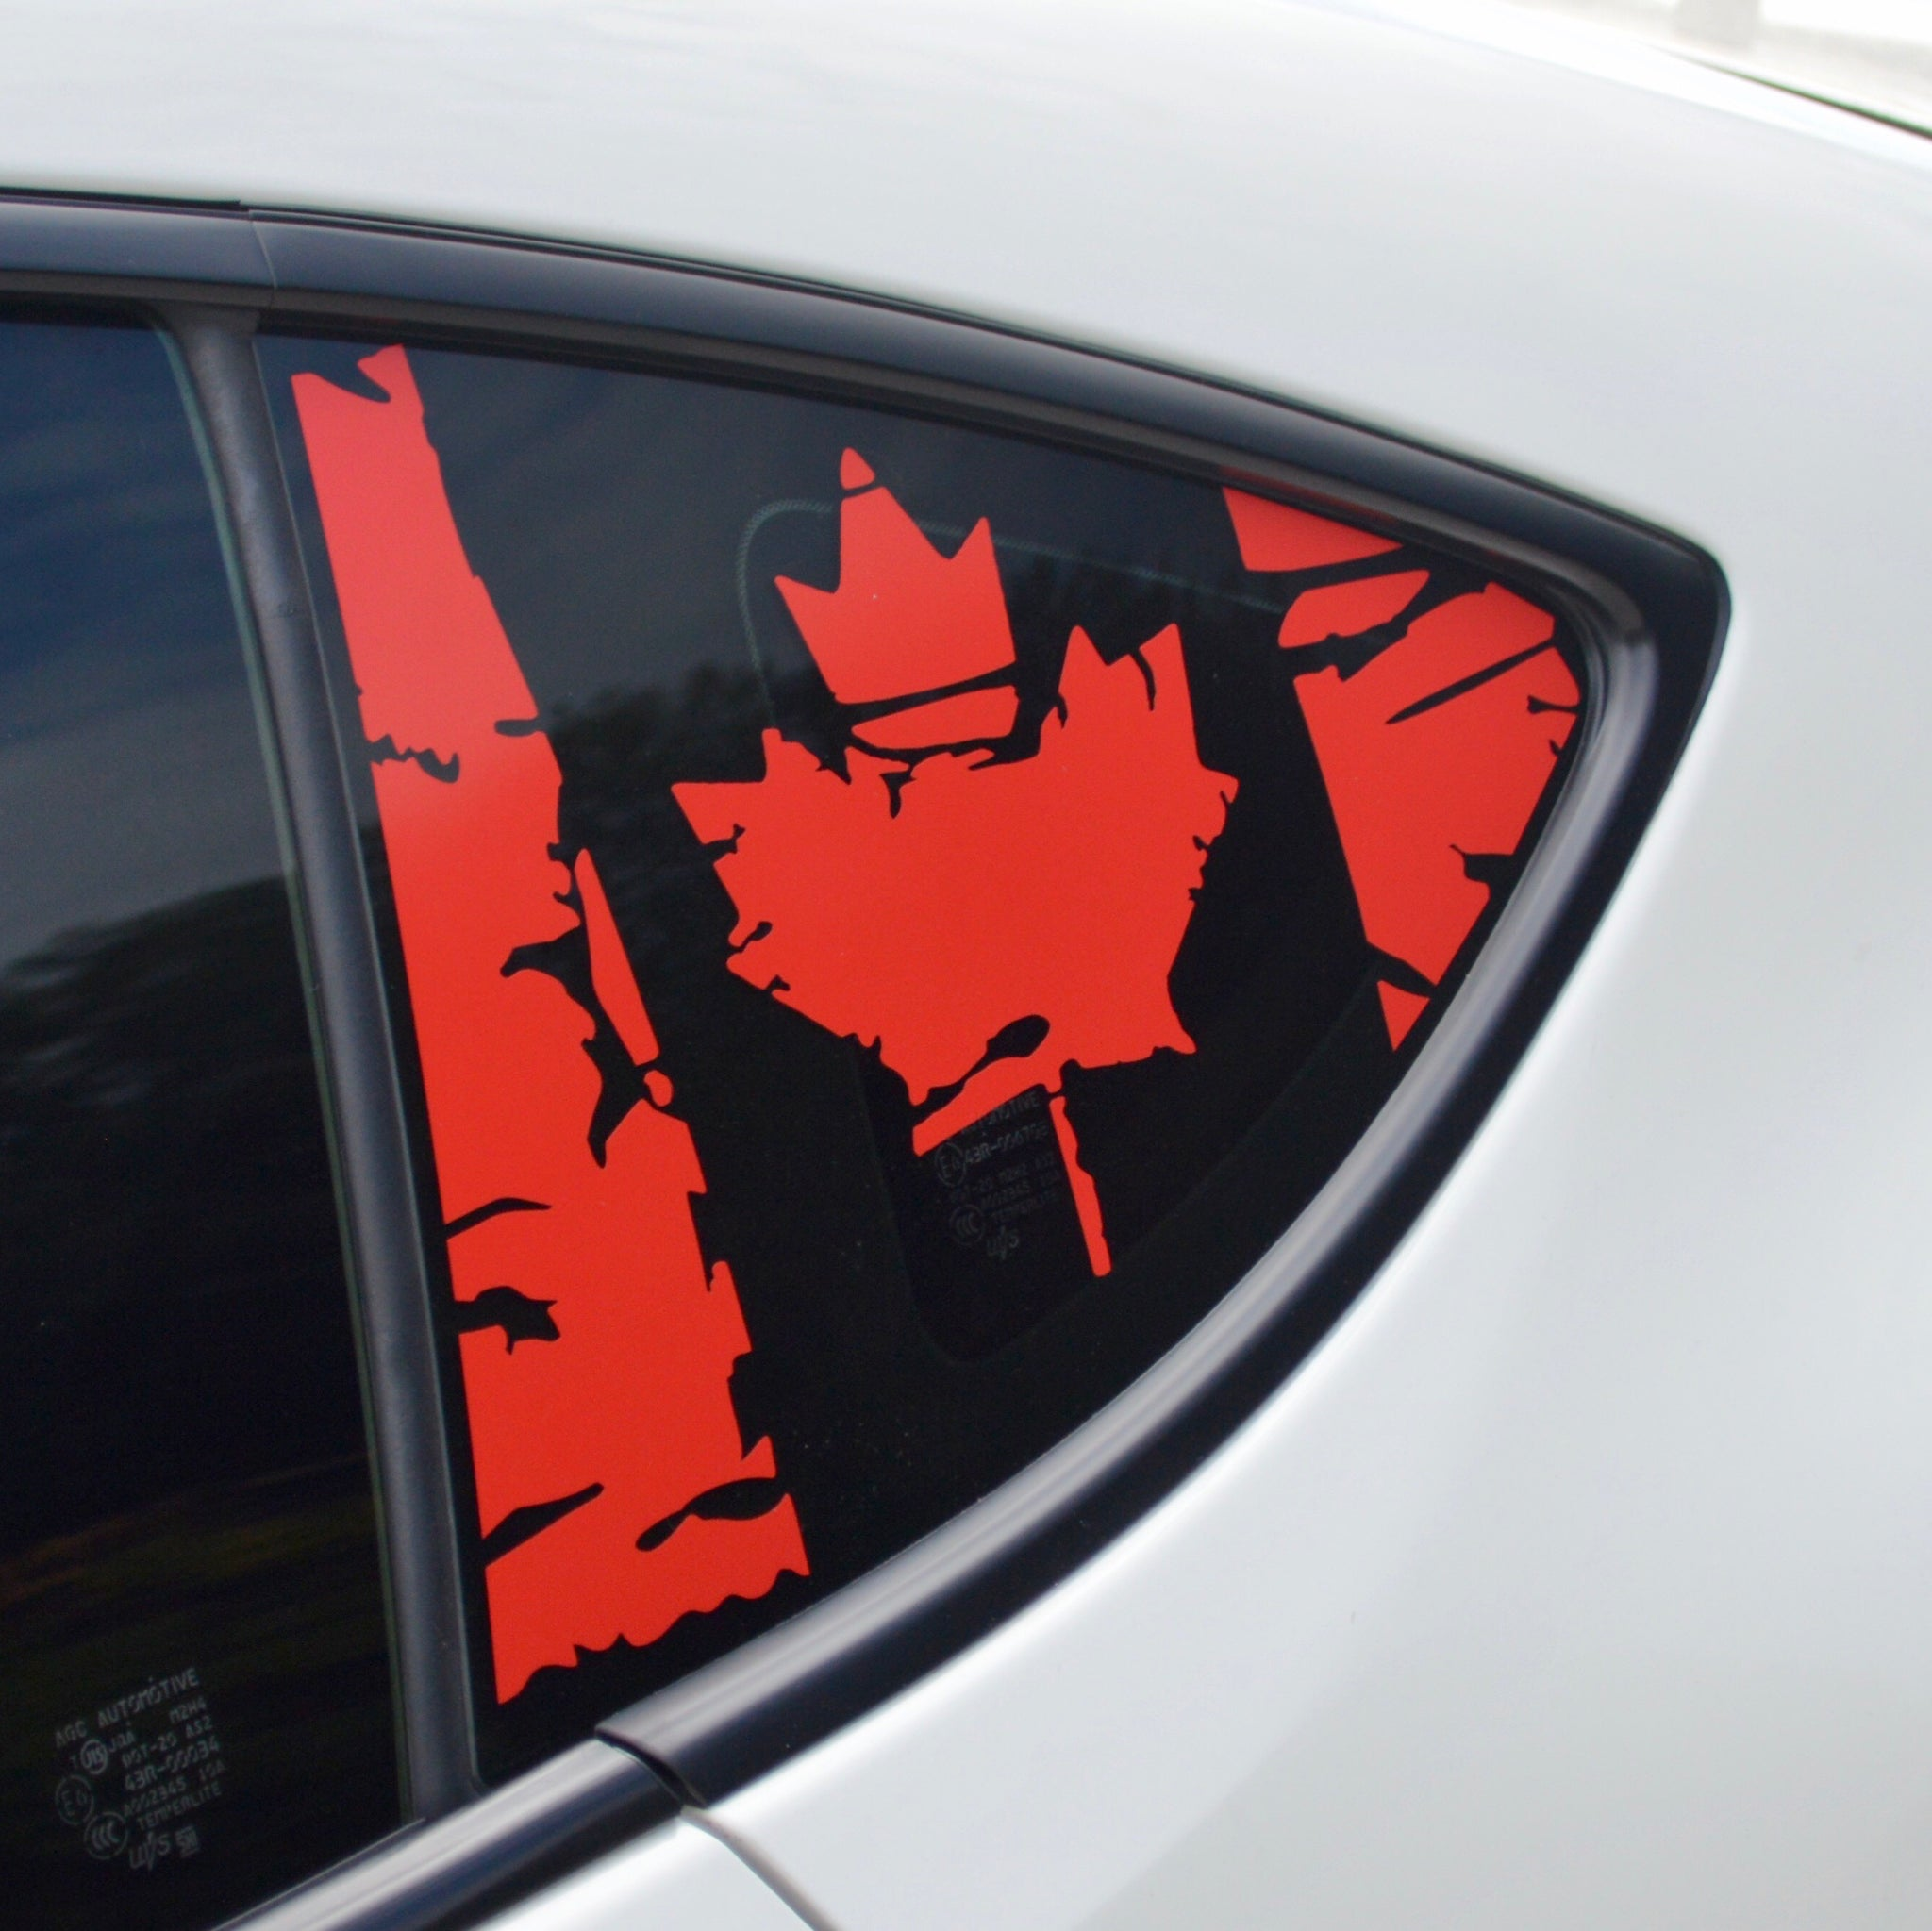 Canada Flag decal sticker for subaru brz scion fr-s toyota gt86 86 ft86